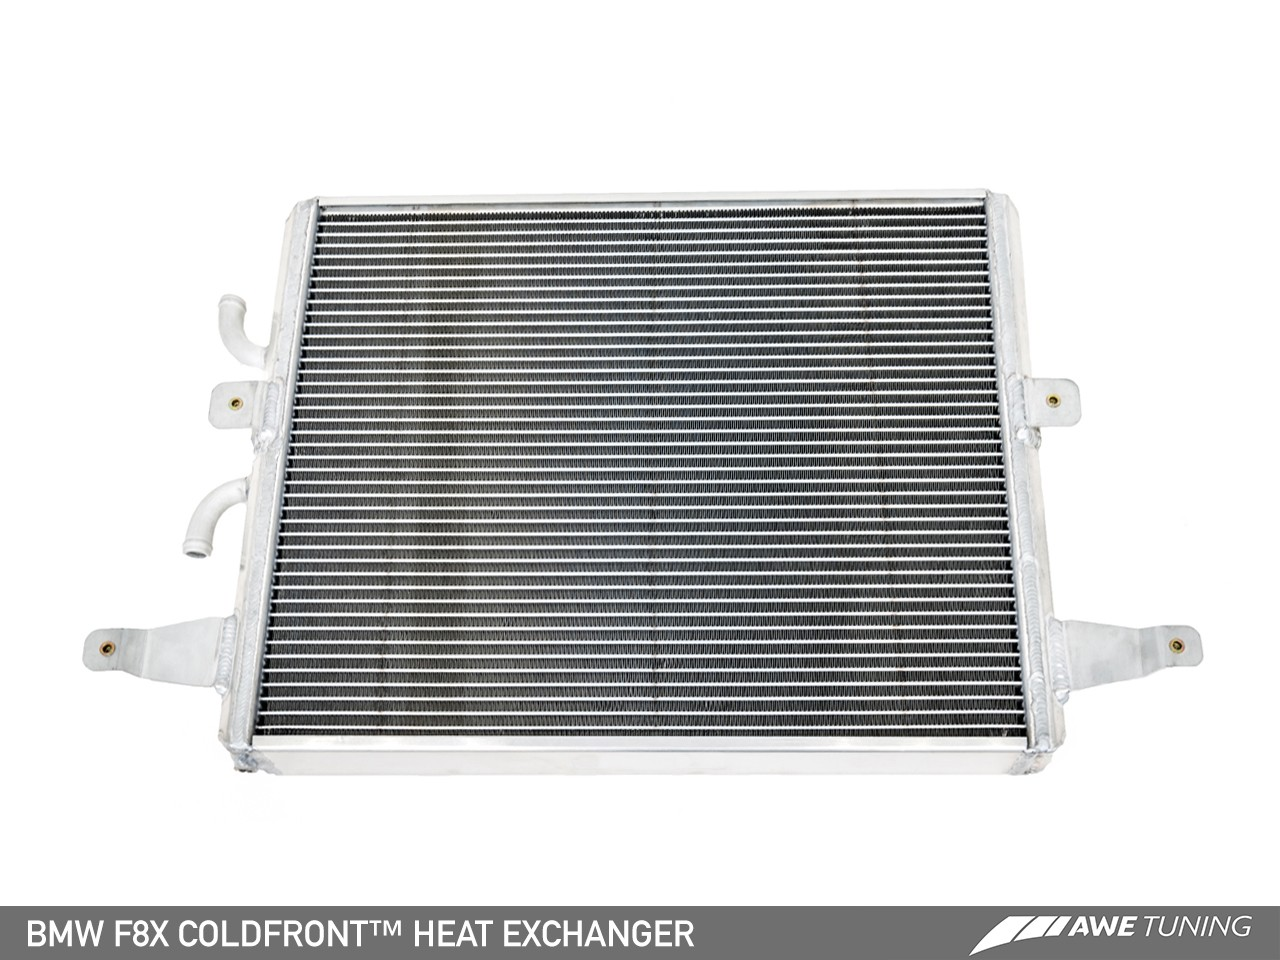 AWE ColdFront Heat Exchanger for BMW F8X M3/M4